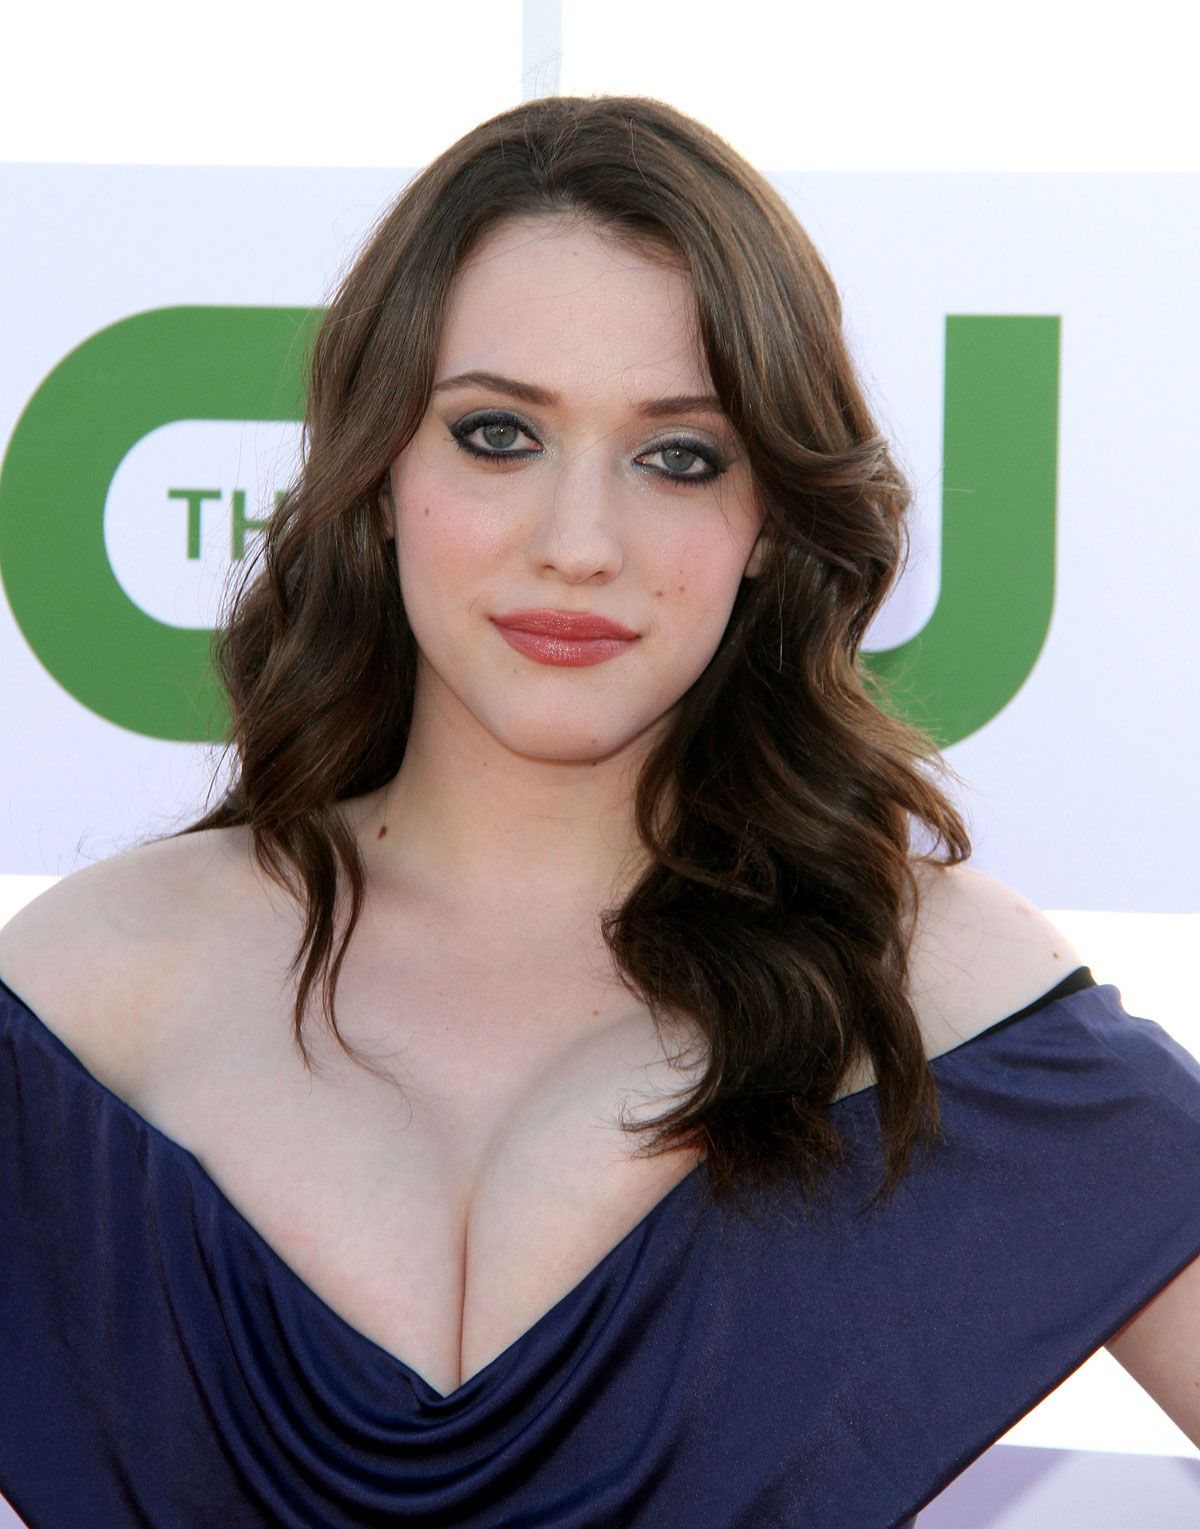 kat dennings 2016kat dennings instagram, kat dennings 2017, kat dennings 2016, kat dennings makeup, kat dennings thor, kat dennings twitter, kat dennings site, kat dennings movies, kat dennings smile, kat dennings anton yelchin, kat dennings png, kat dennings mr robot, kat dennings raise your voice, kat dennings youtube channel, kat dennings facebook, kat dennings mom, kat dennings drake, kat dennings 2004, kat dennings photos bikini, kat dennings getty images